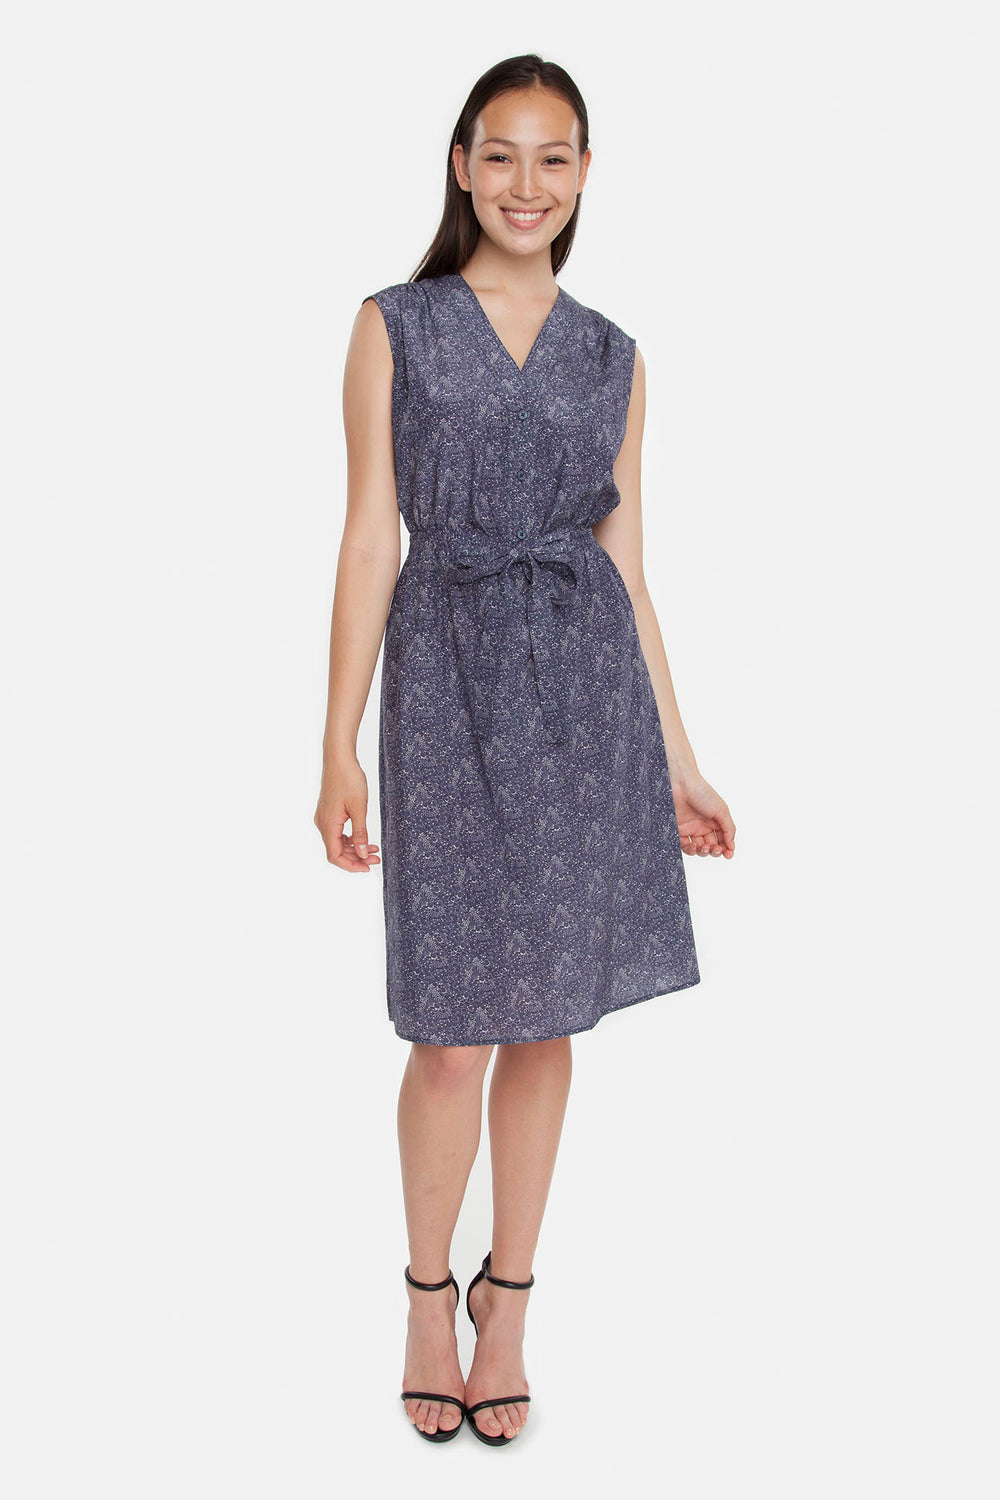 The Sleeveless Tie Waist Dress | Navy Vine Floral